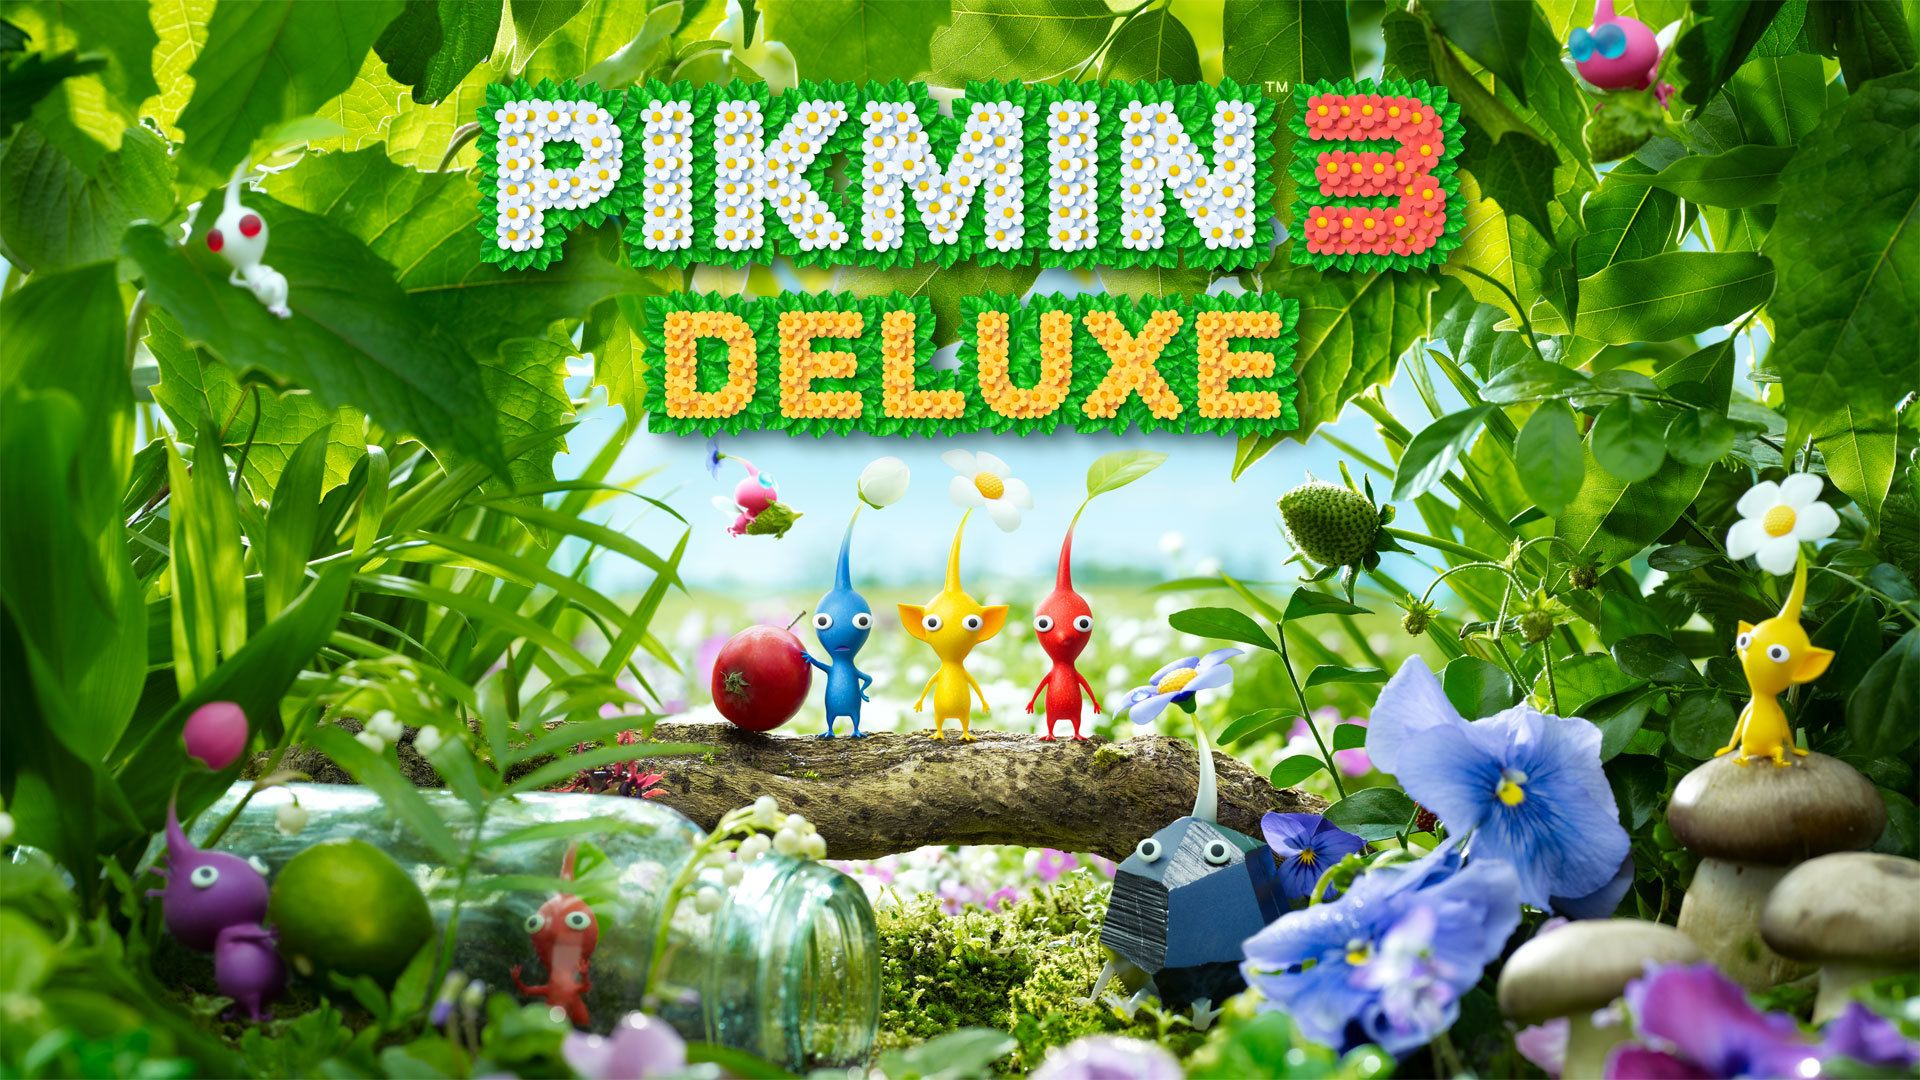 Pikmin 3 Deluxe HD Wallpapers - Wallpaper Cave